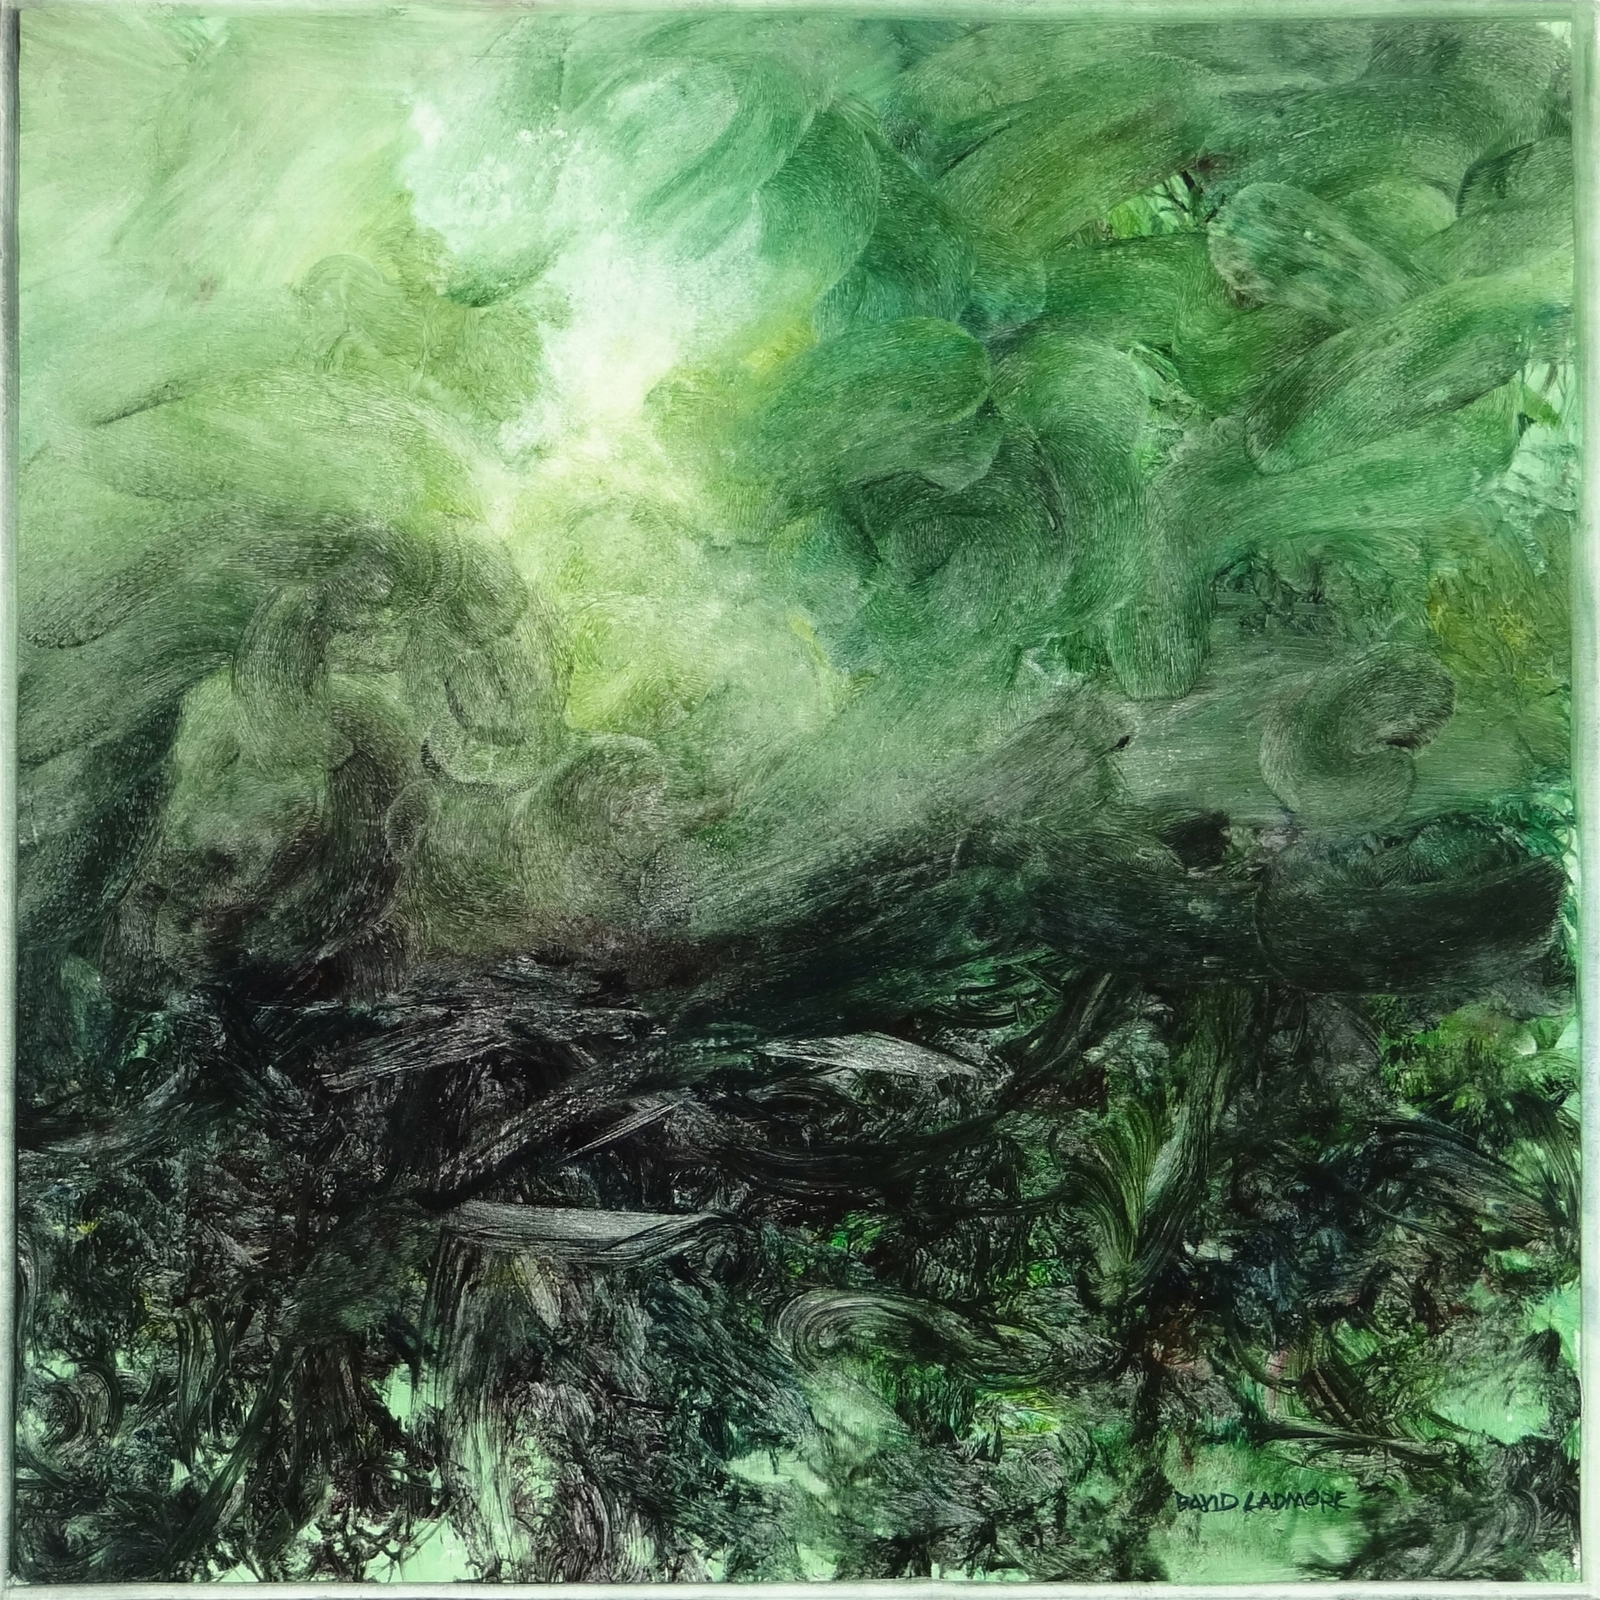 image of landscape oil painting Elemental 34 by David Ladmore